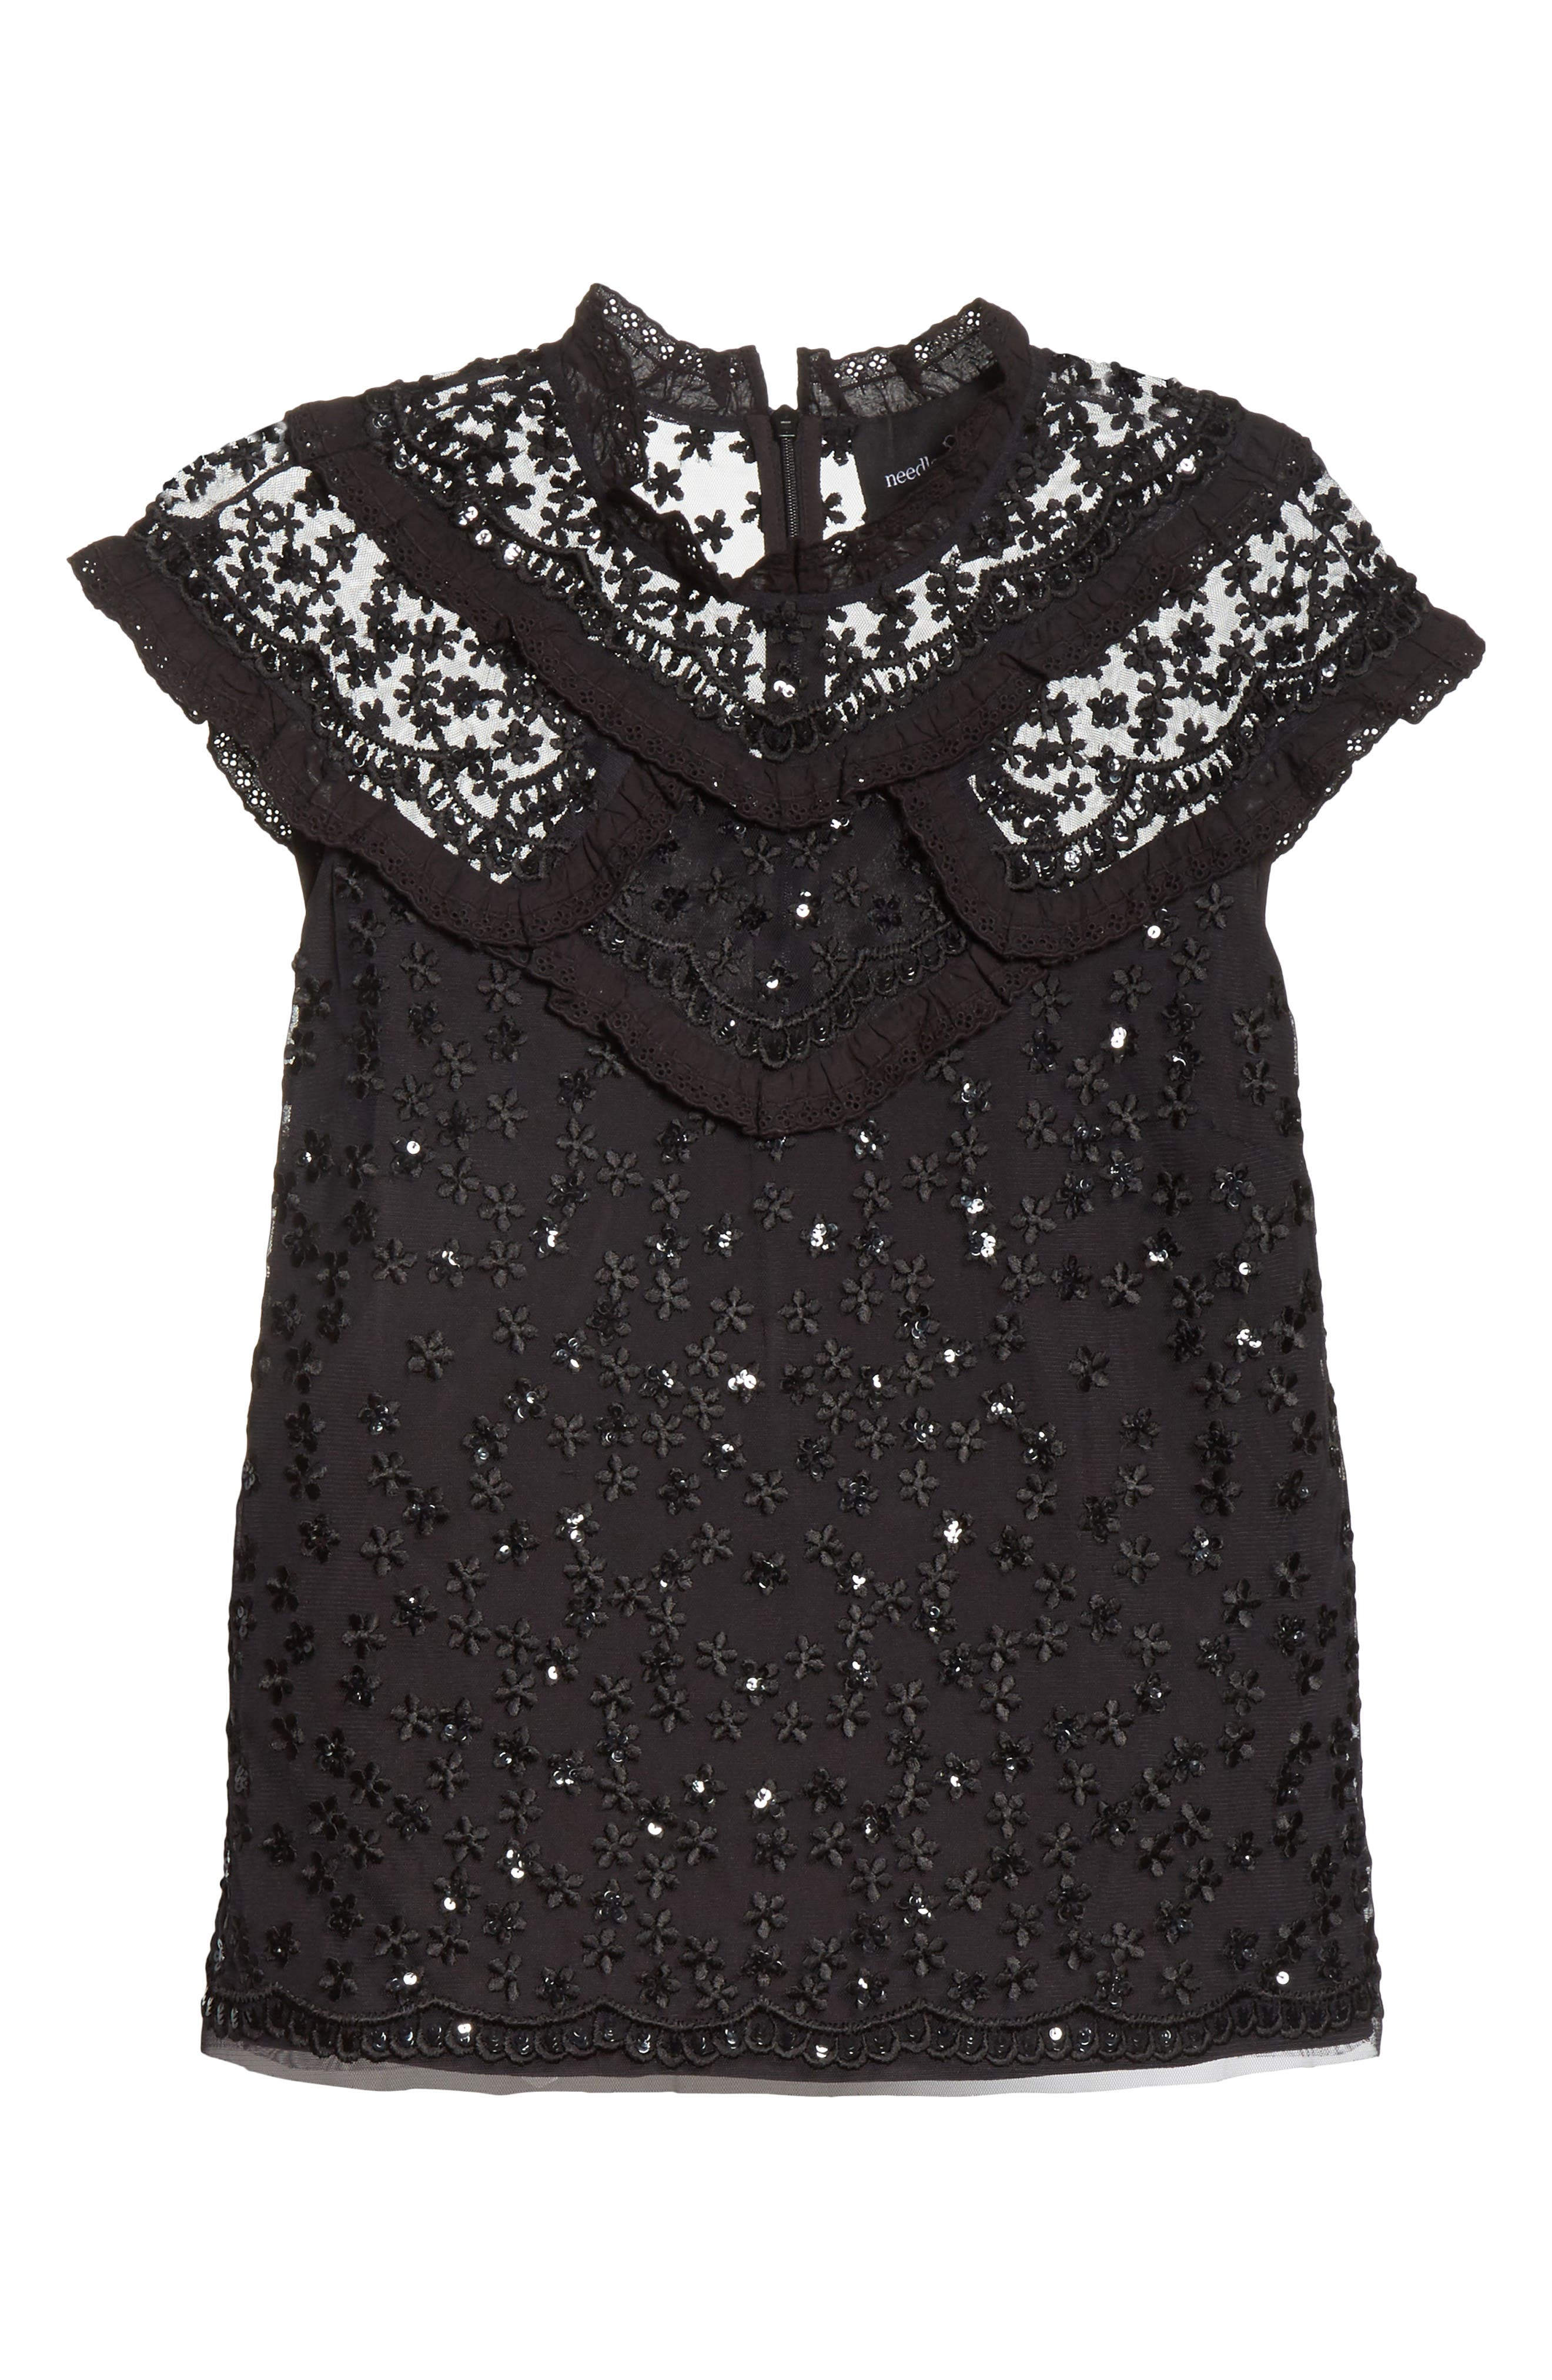 Daisy Sequin Embroidered Top,                             Alternate thumbnail 6, color,                             Washed Black